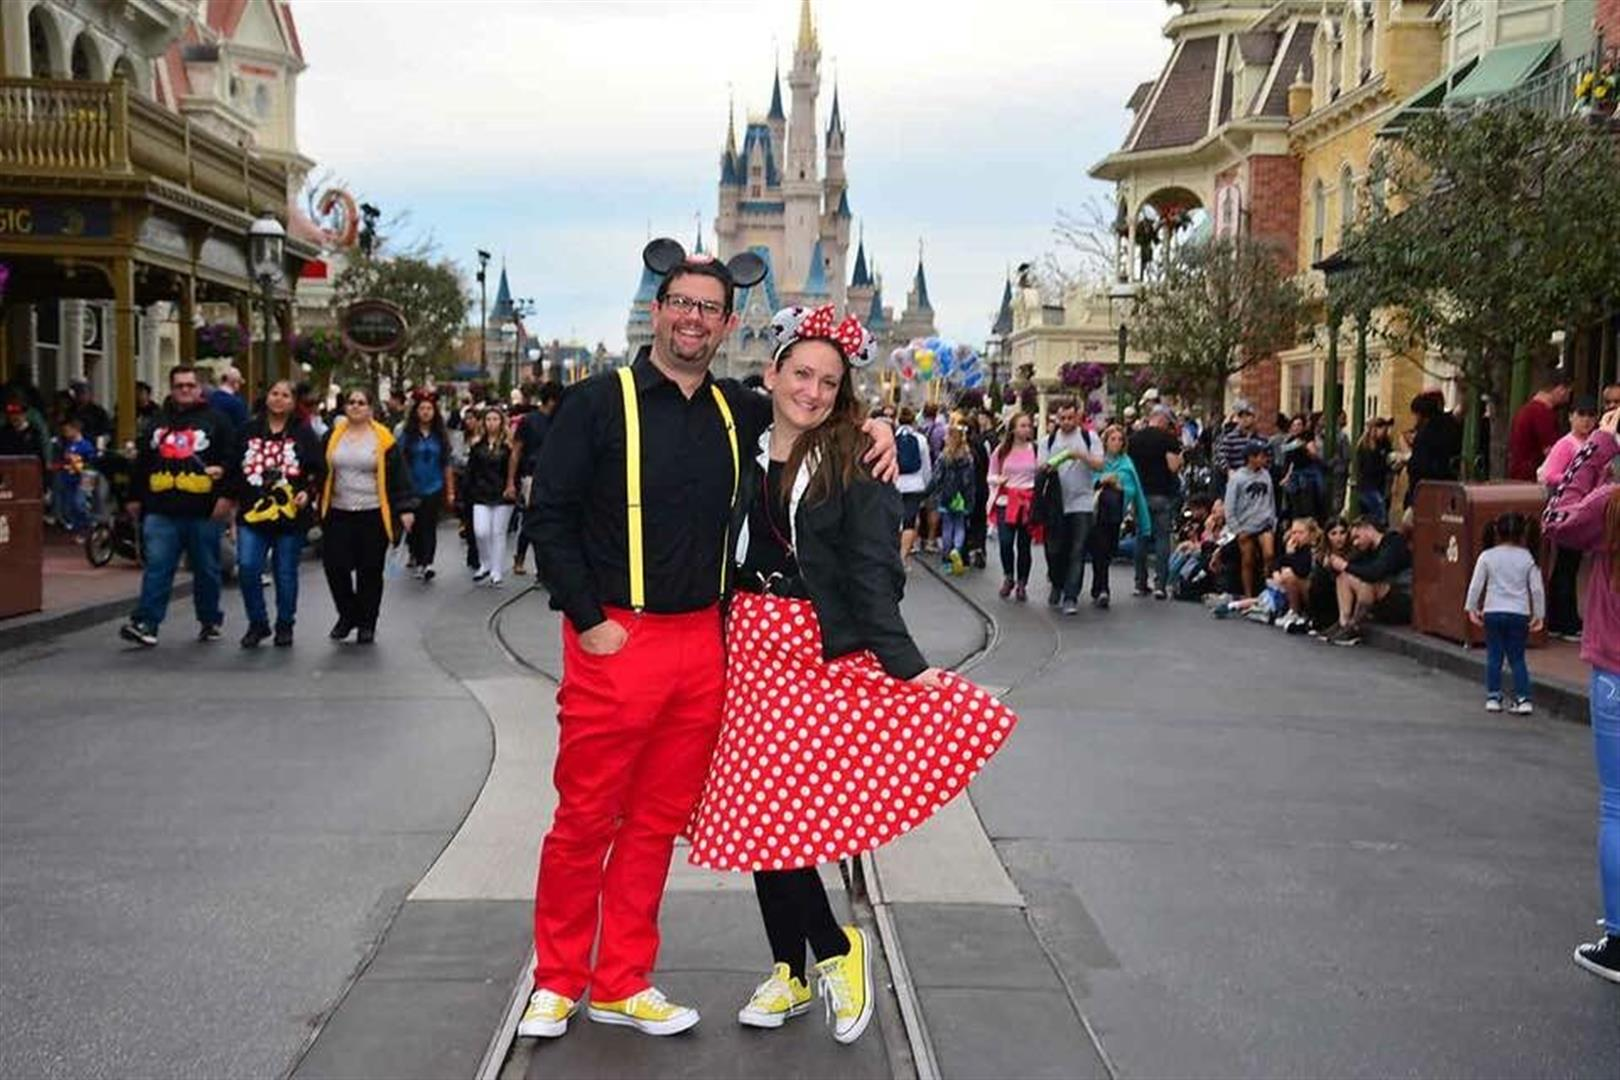 Tony and Heather at Walt Disney World | MouseMingle.com